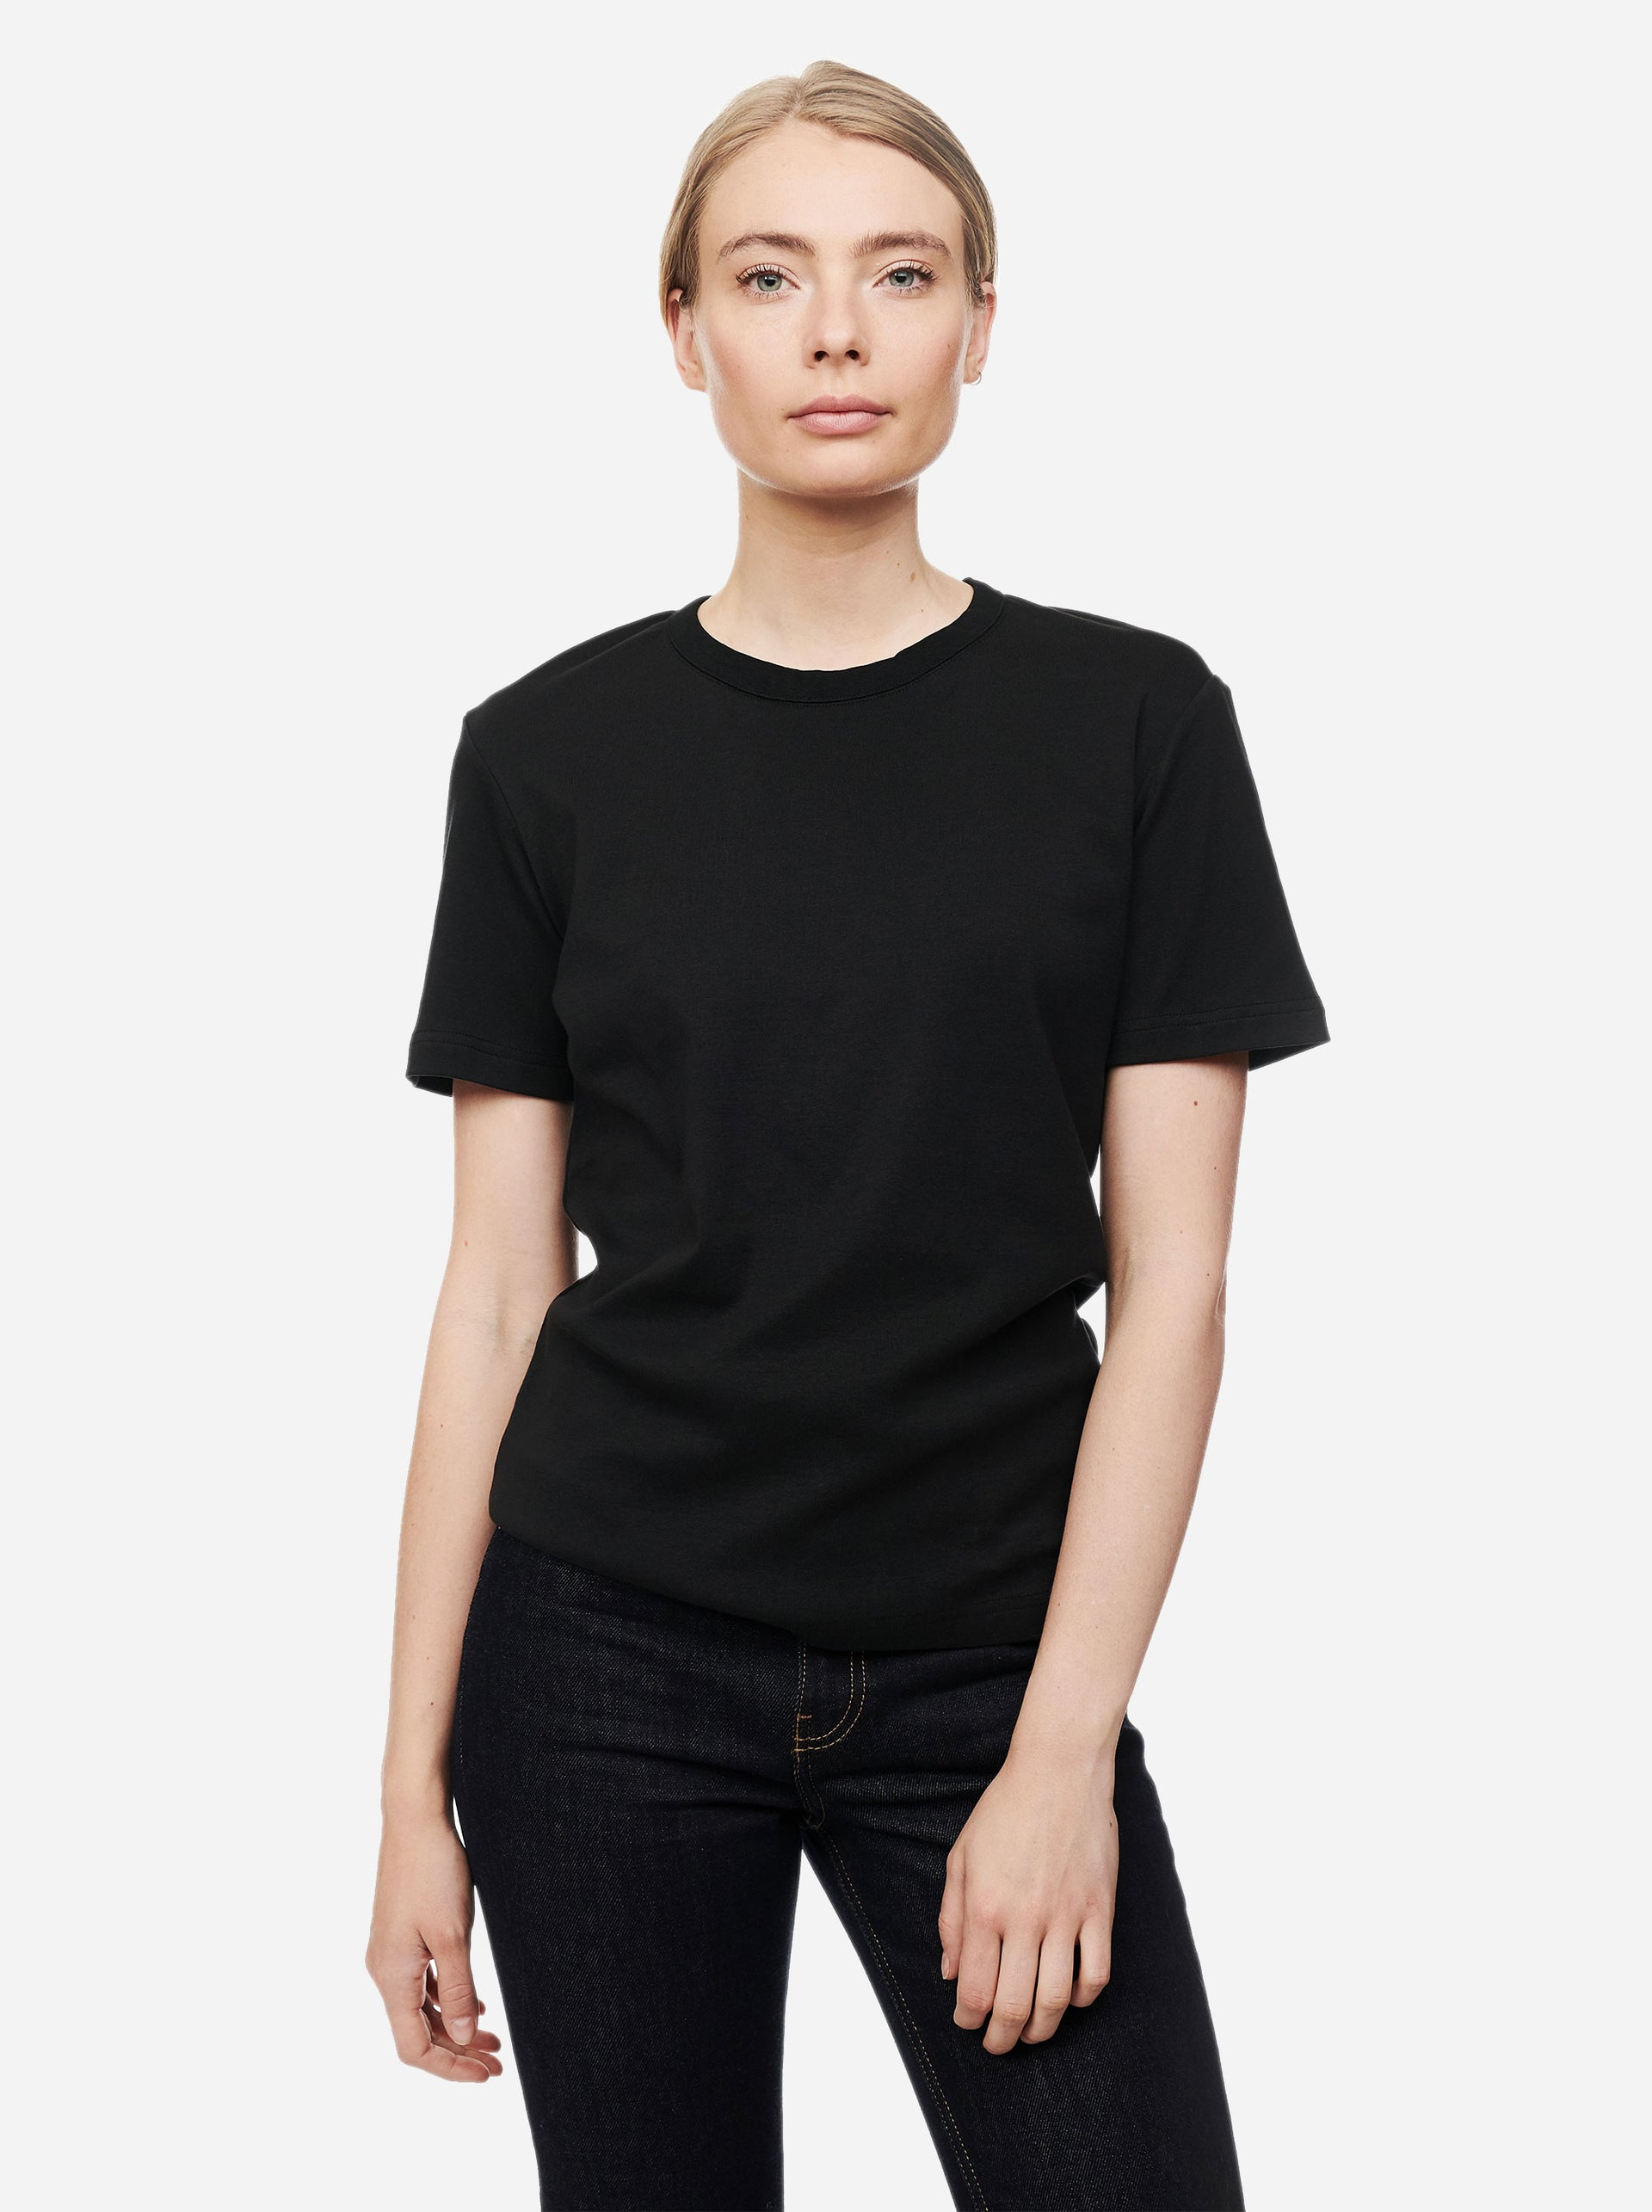 The T-Shirt - Black